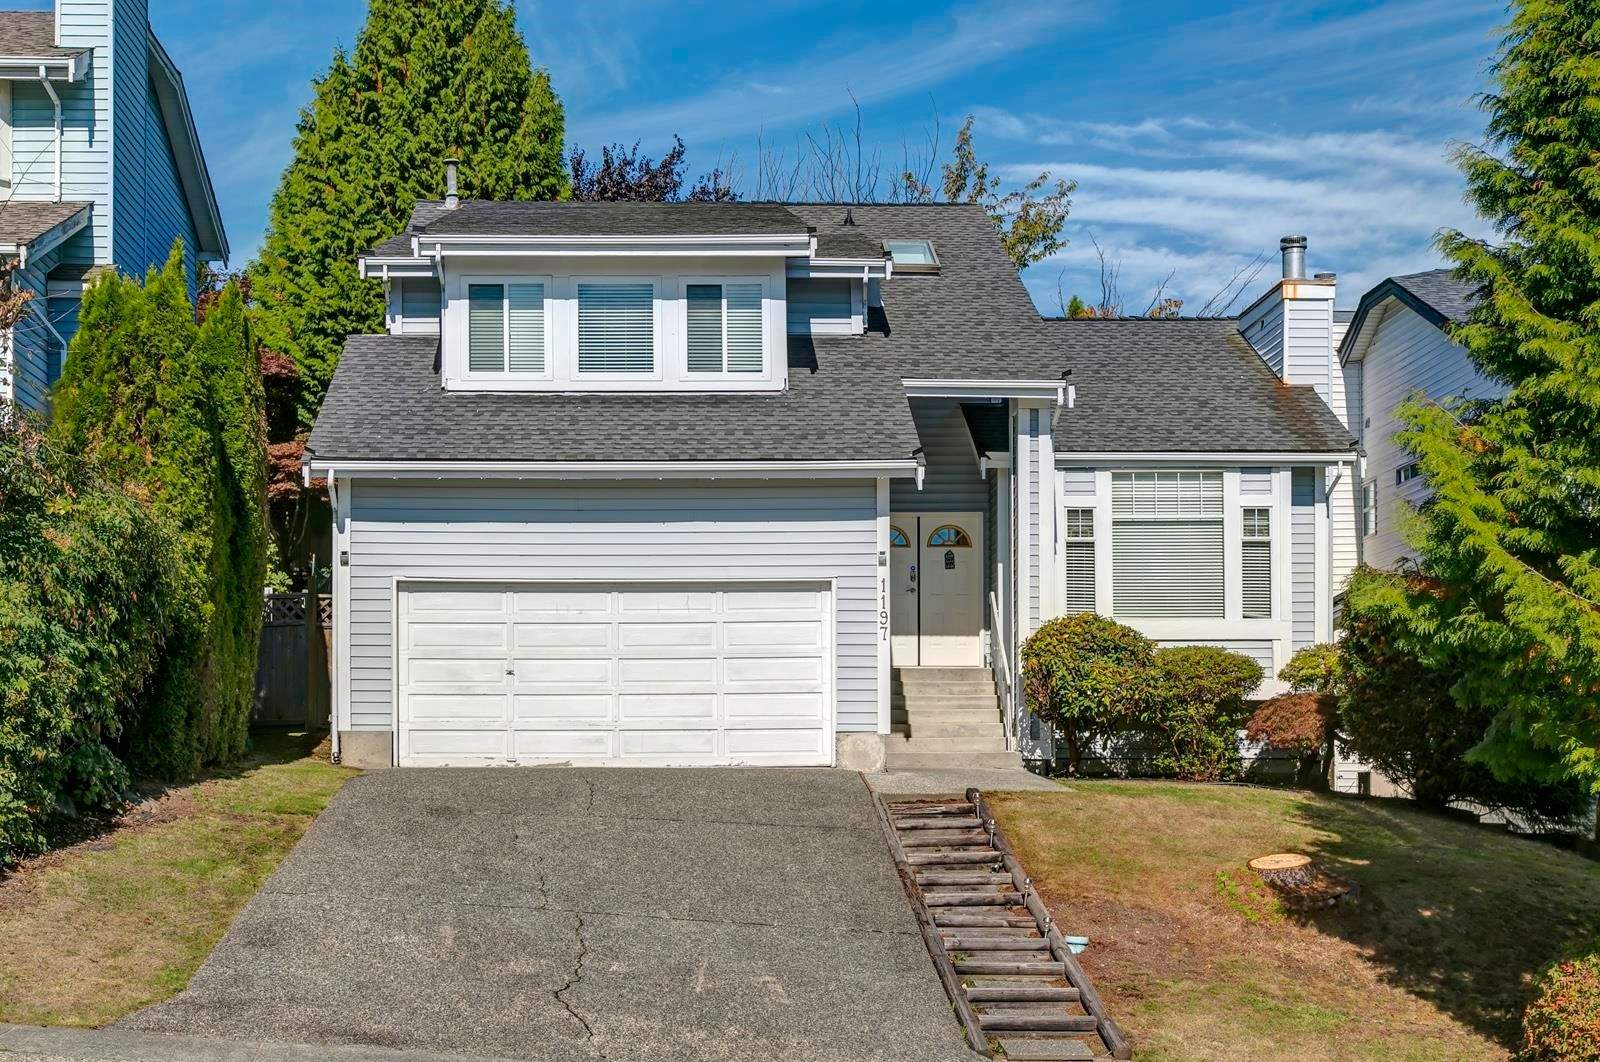 Main Photo: 1197 DURANT Drive in Coquitlam: Scott Creek House for sale : MLS®# R2621200